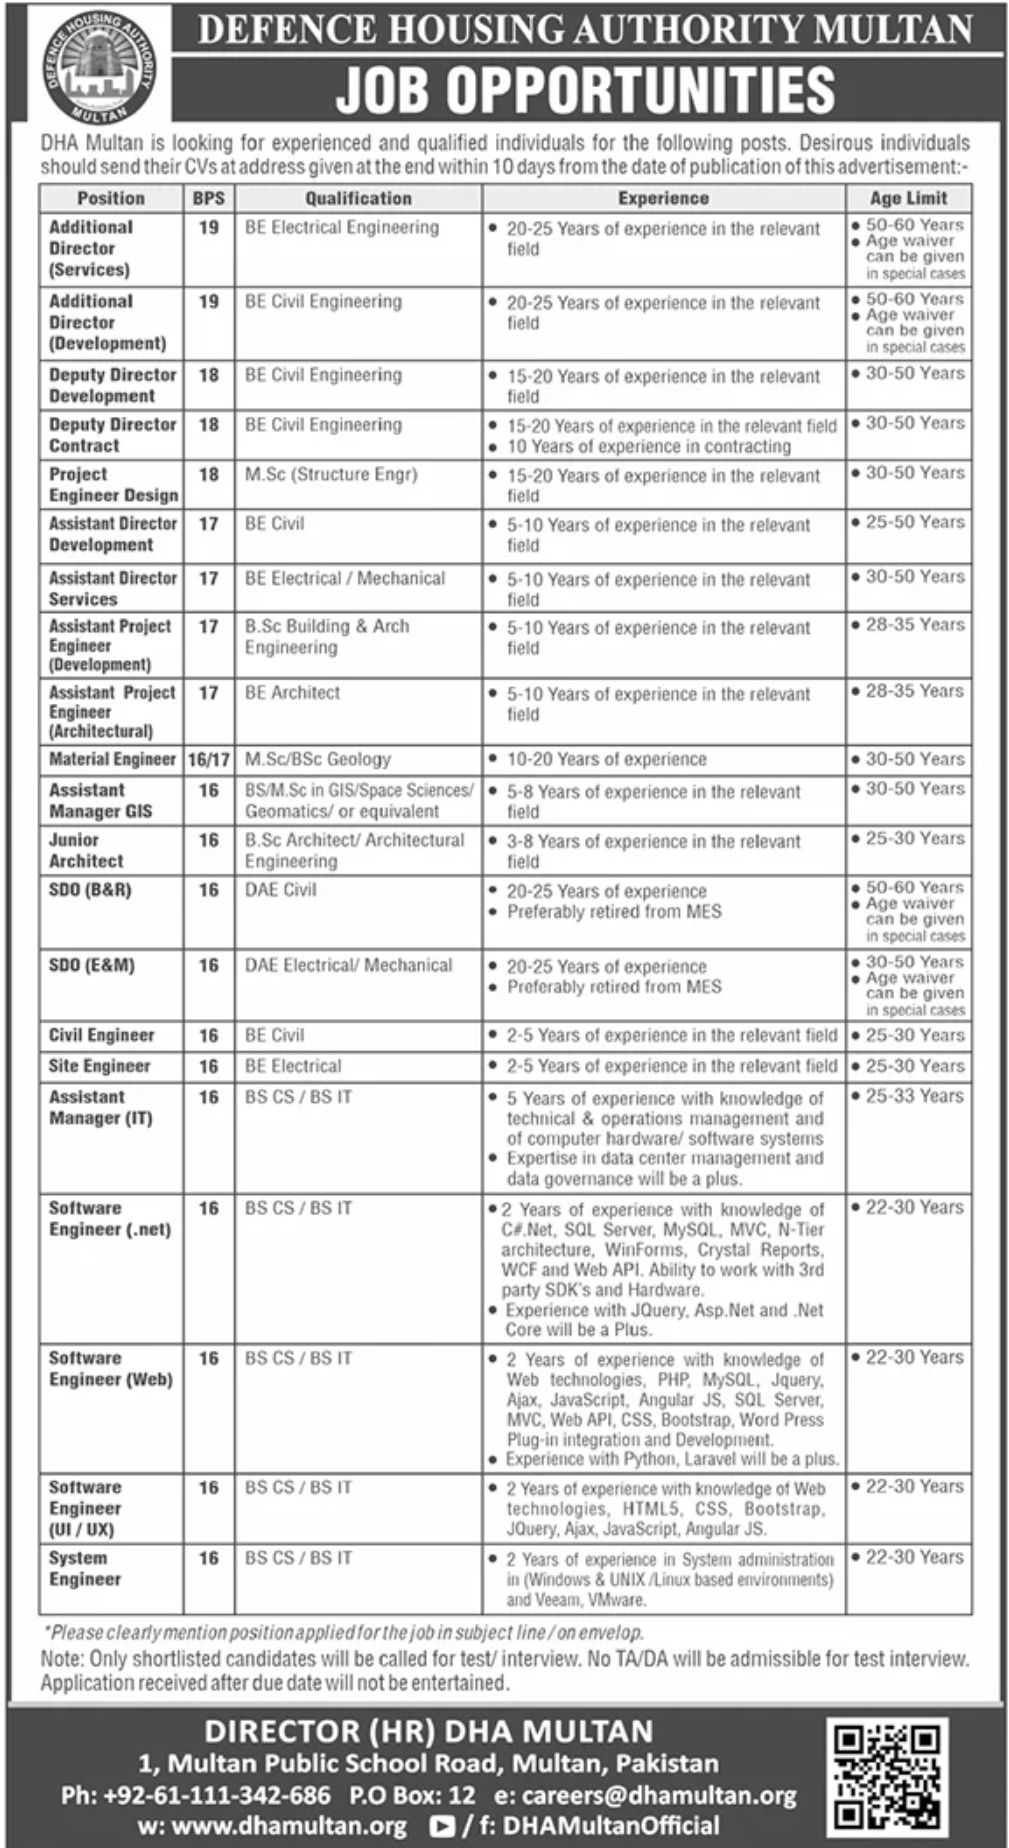 Defence Housing Authority Multan Jobs July 2020